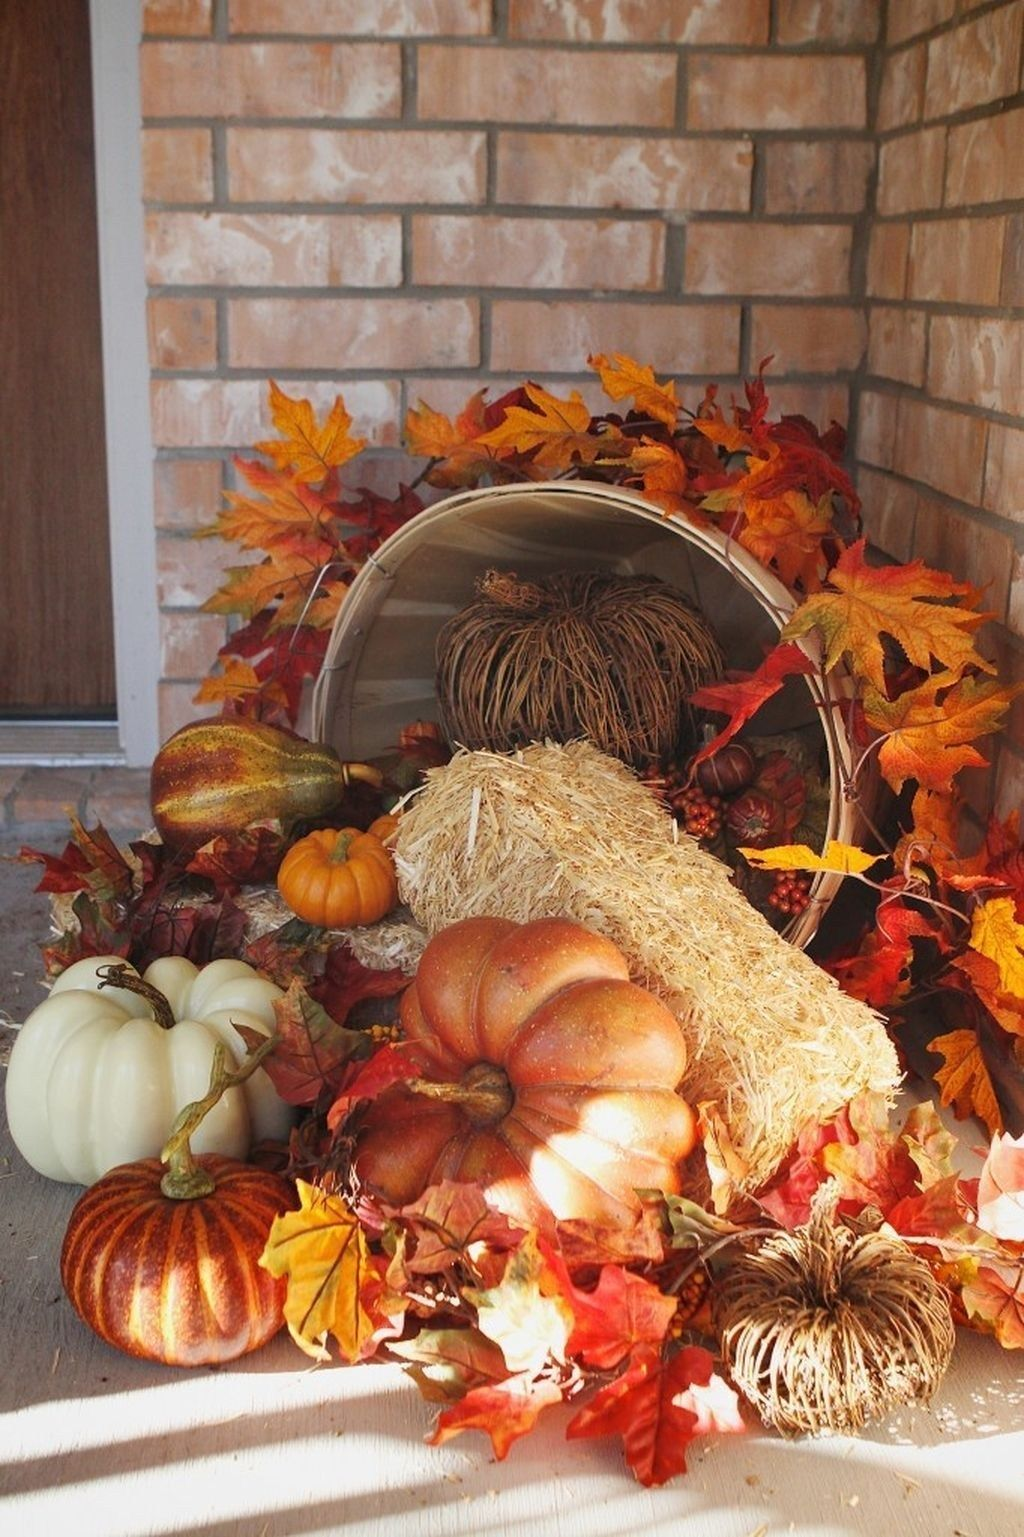 48 Amazing Outdoor Fall Decor Ideas That Will Fascinate You Hoomdesign Fall Decorations Porch Fall Outdoor Decor Fall Front Porch Decor